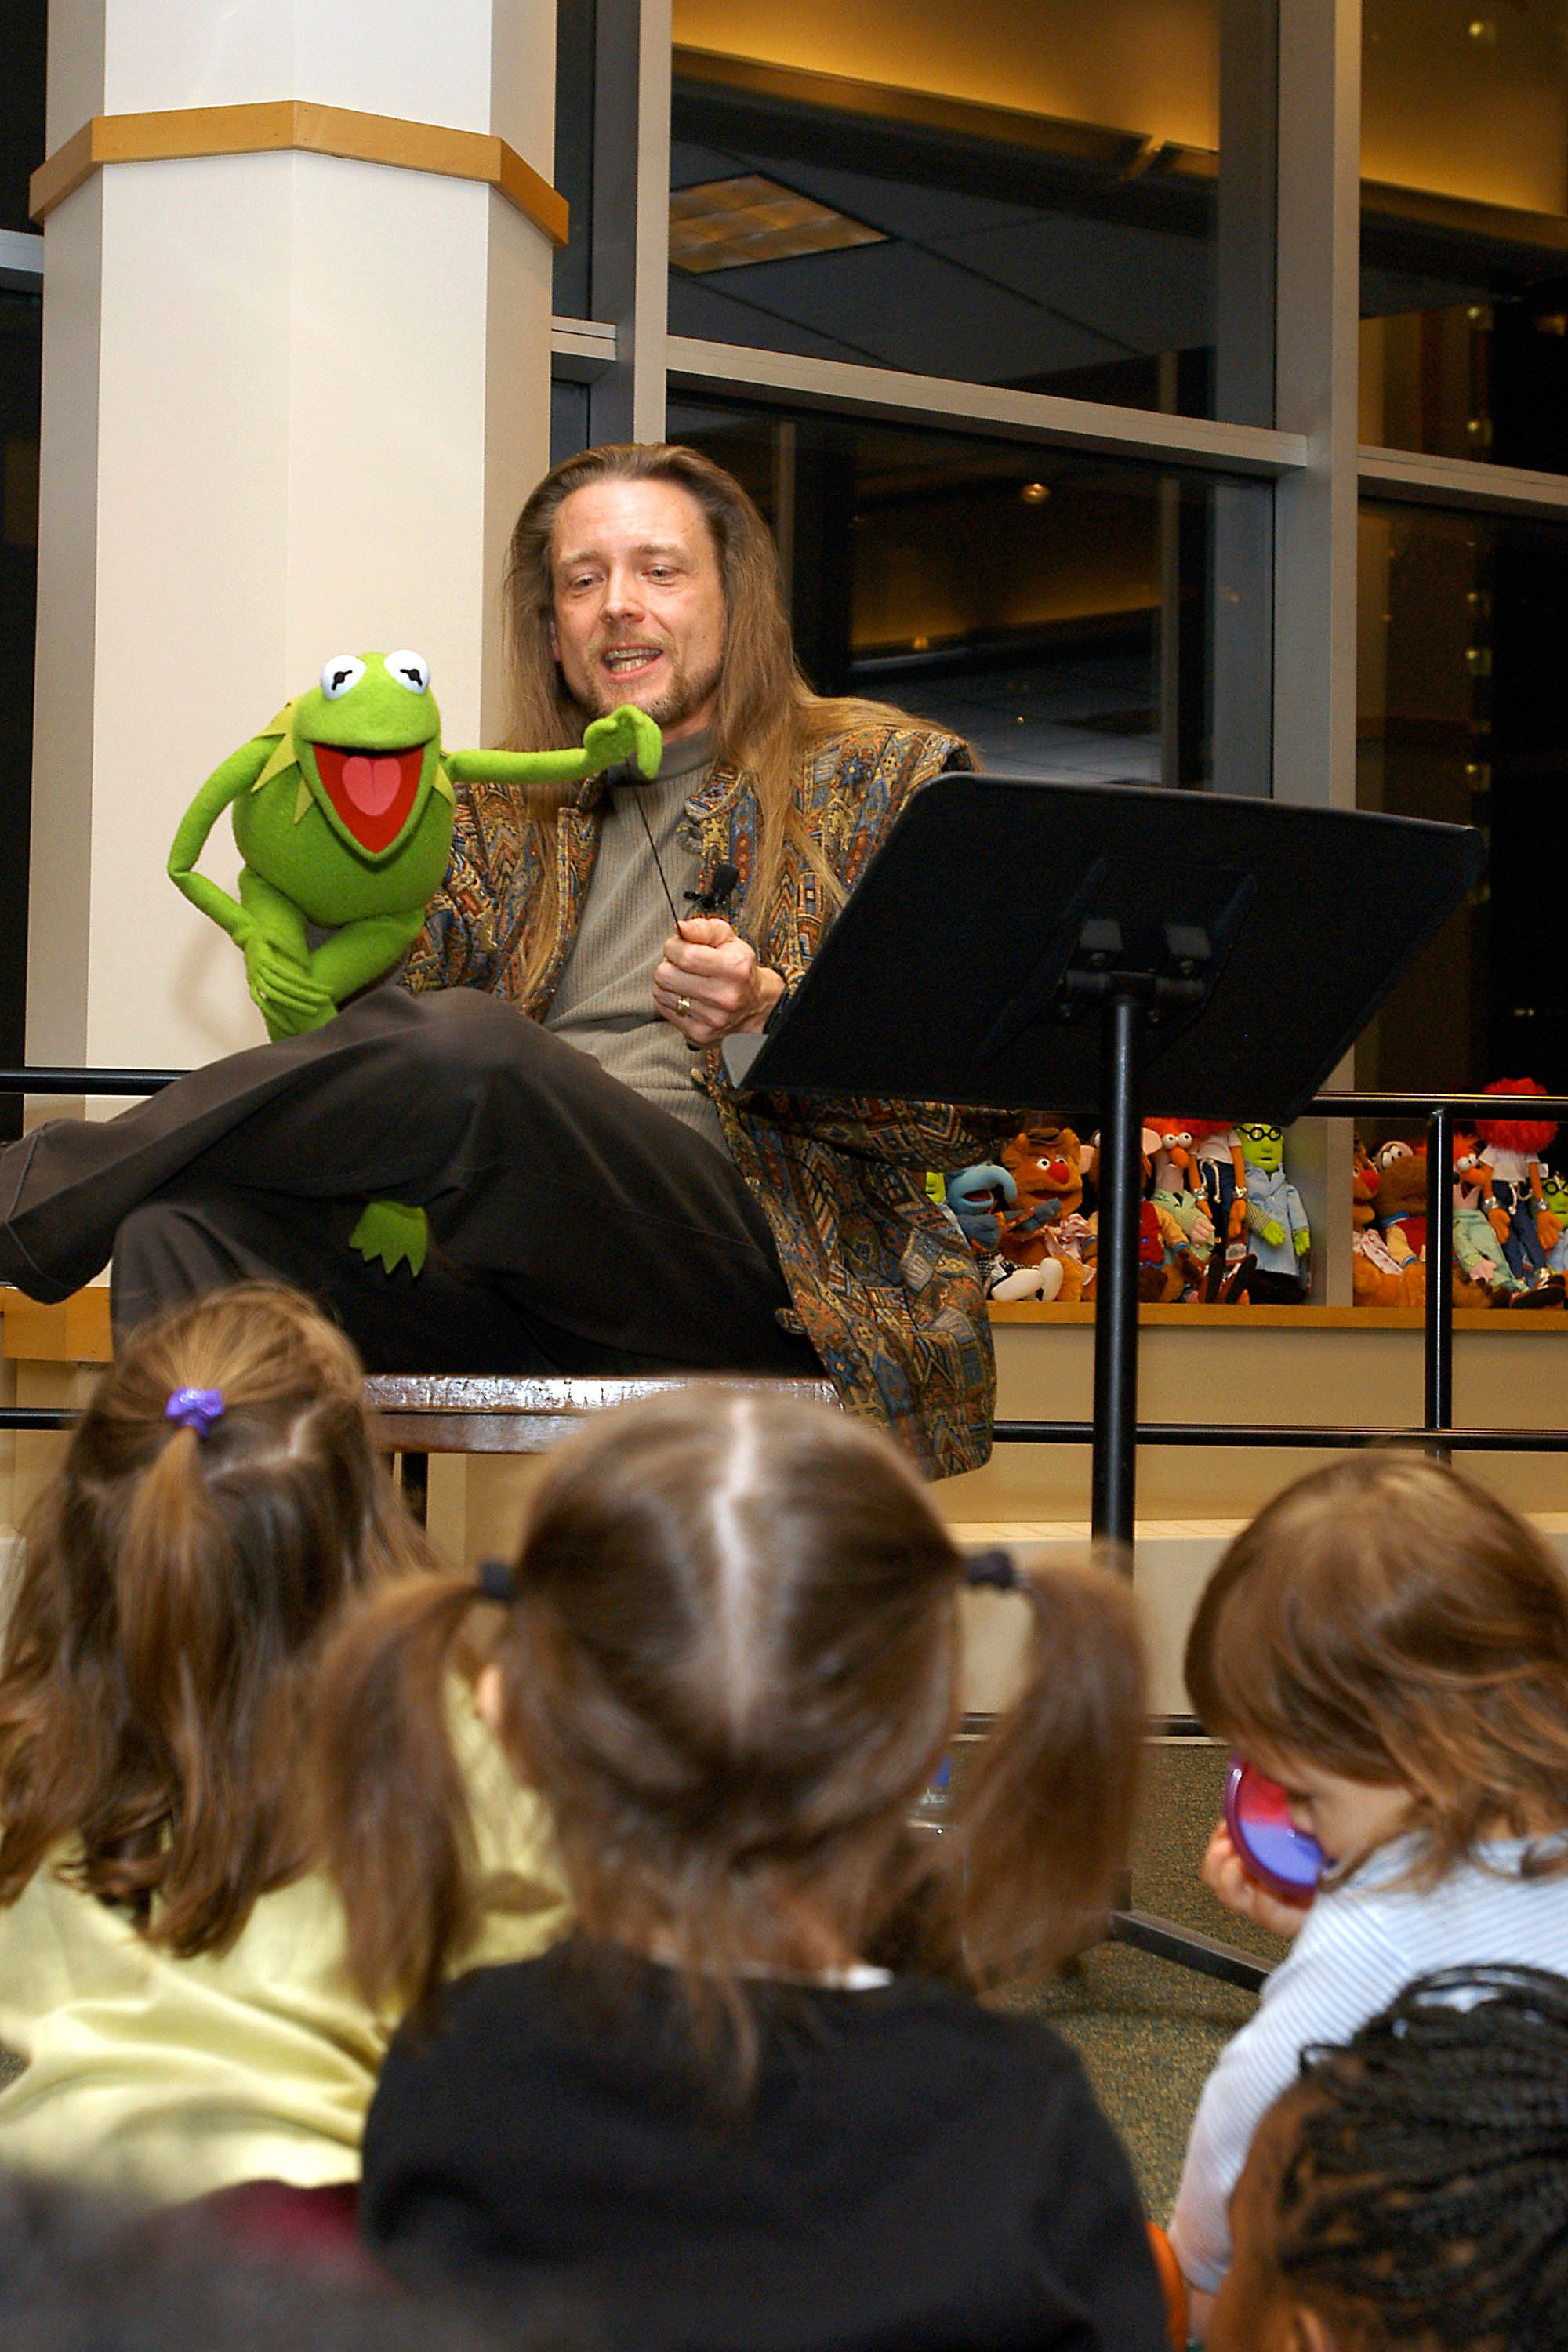 Muppets Studio Says Kermit Actor Steve Whitmire Was Fired Over 'Unacceptable Business Conduct'